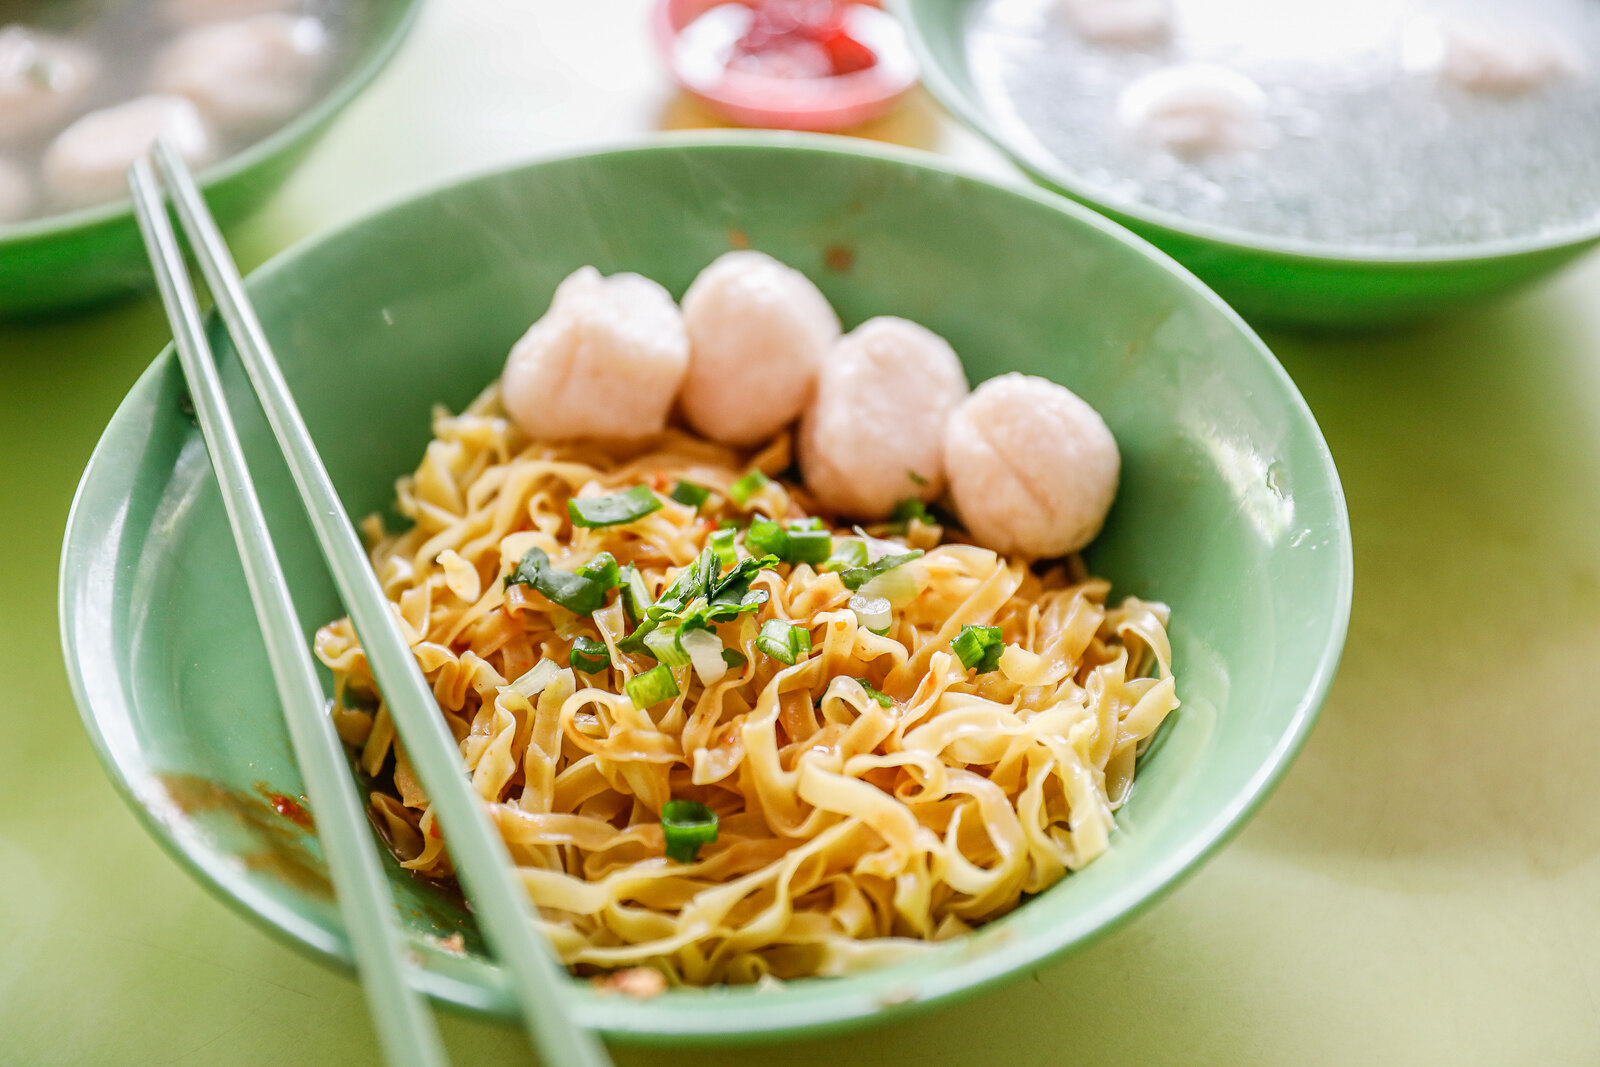 Albert Centre Market and Food Centre - hock lee fishball noodles mee pok